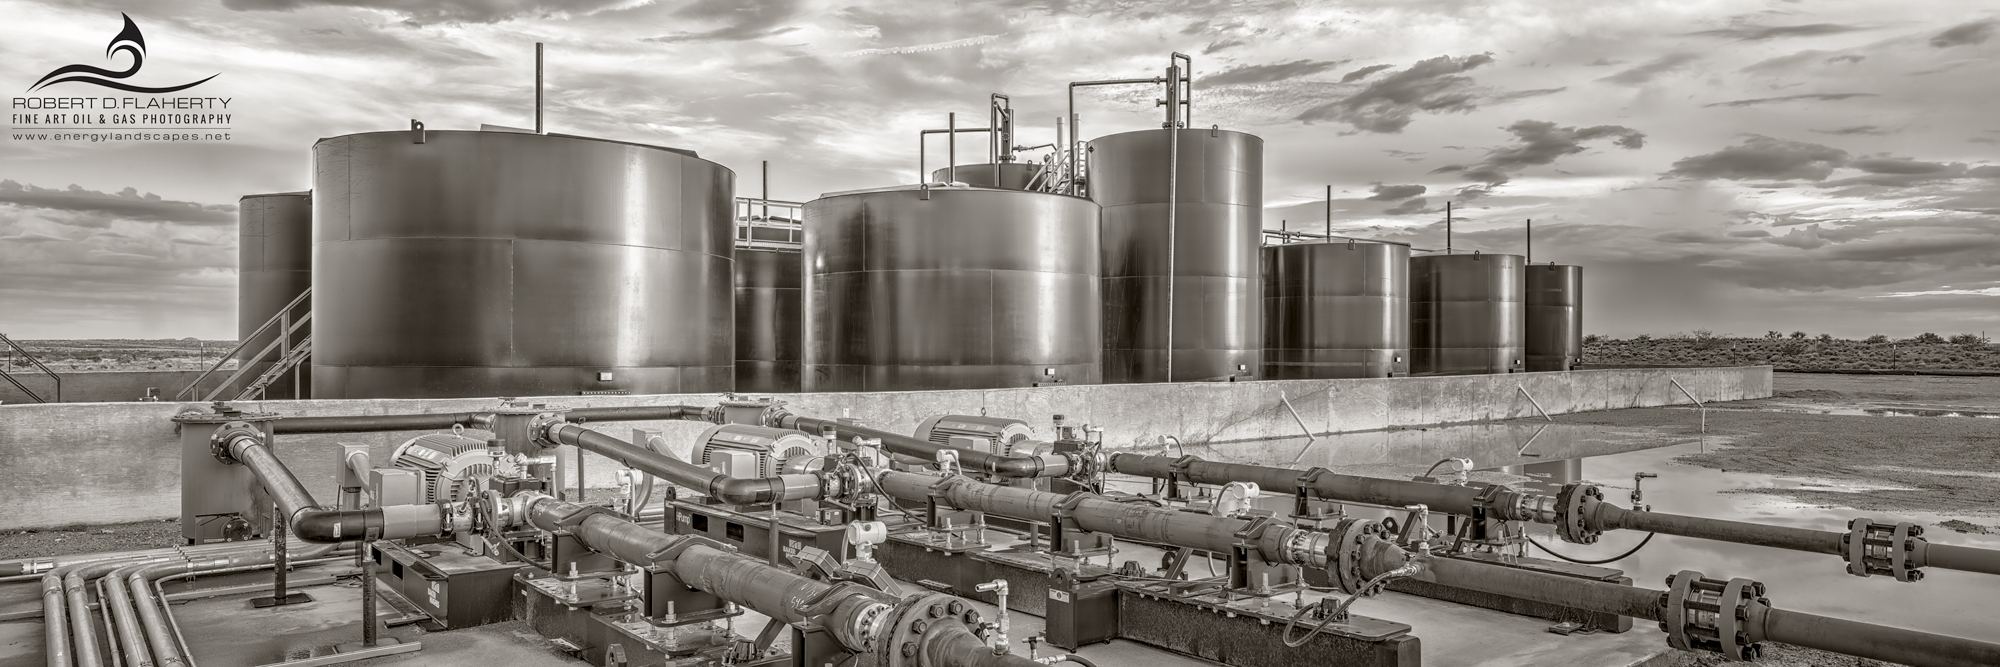 SWD, salt water disposal well, Texas, Delaware Basin, Permian Basin, high resolution, black & white photography, sepia, leather, decor, composite panorama, Baker Hughes, injection pumps, rain, midstre, photo